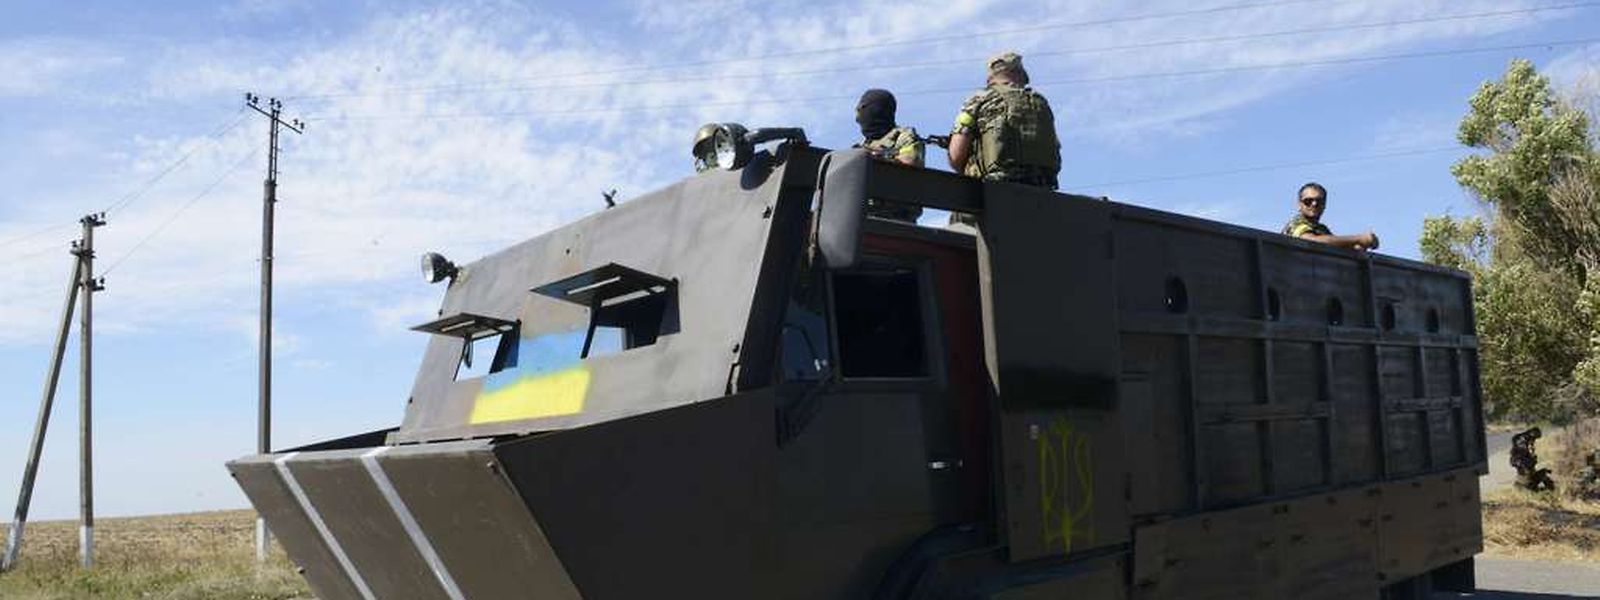 Members of Ukrainian volunteer battalion Dnipro stand in a truck covered in steel plates near the small southern Ukrainian city of Novoazovsk, Donetsk region, on August 27, 2014. Ukraine appealed for NATO's help on August 27 after reporting that a huge convoy of tanks and weaponry from Russia was moving through the southeast of the country. AFP PHOTO/ ALEXANDER KHUDOTEPLY